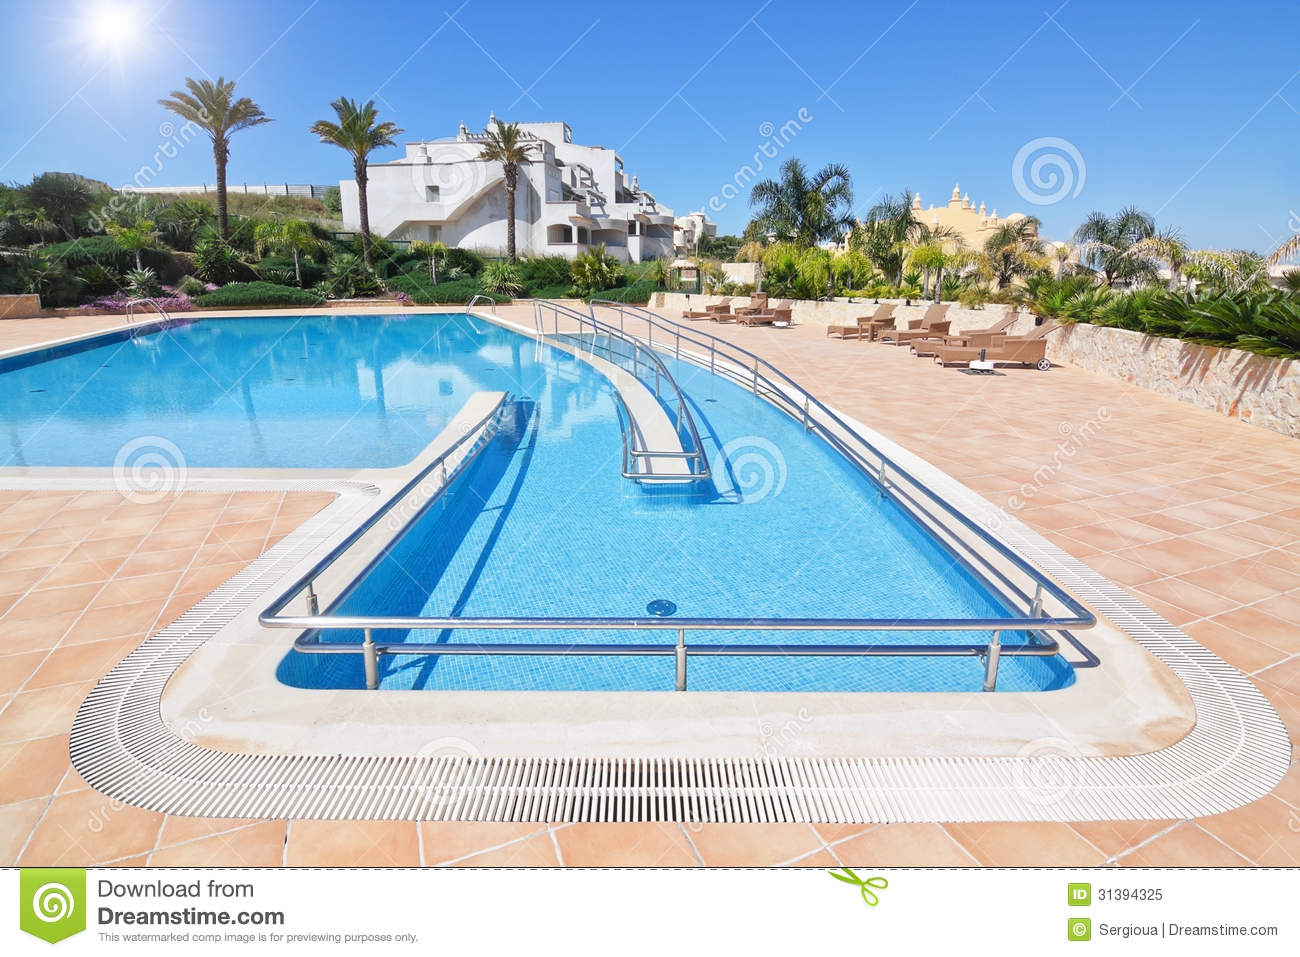 Abdeckplane Pool 412 X 201 Lovely Hotel New Calendar Template Site